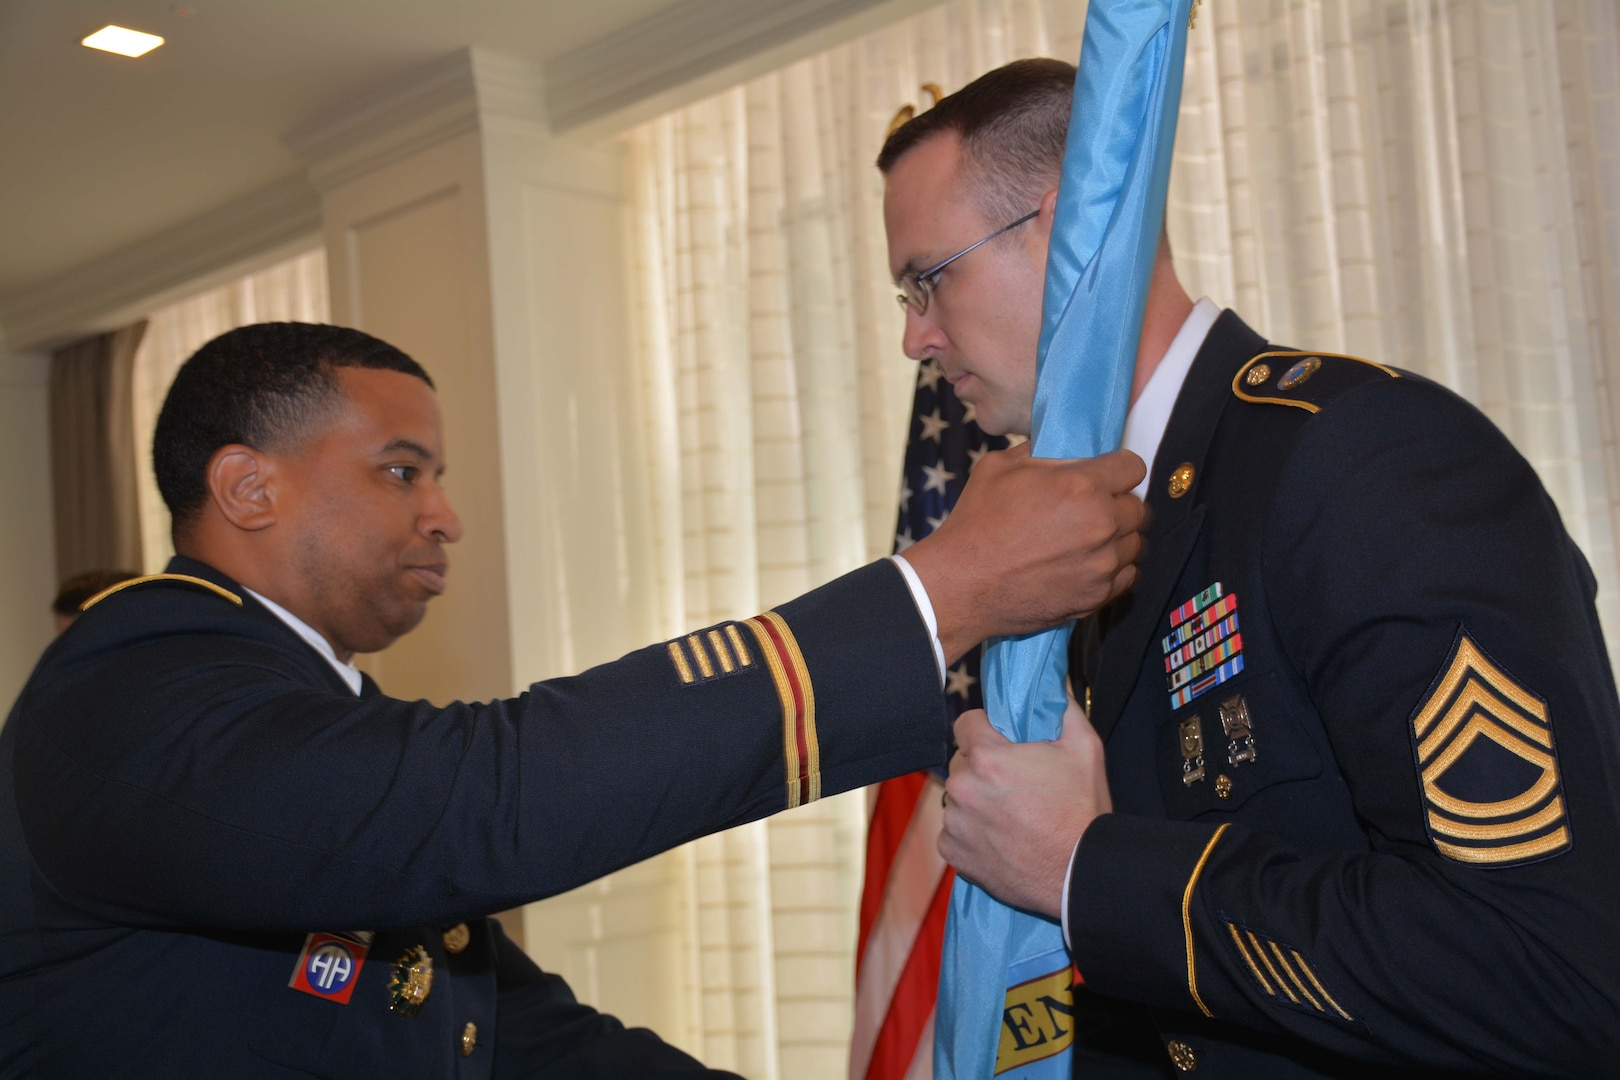 Army officer hands flag to Army NCO.